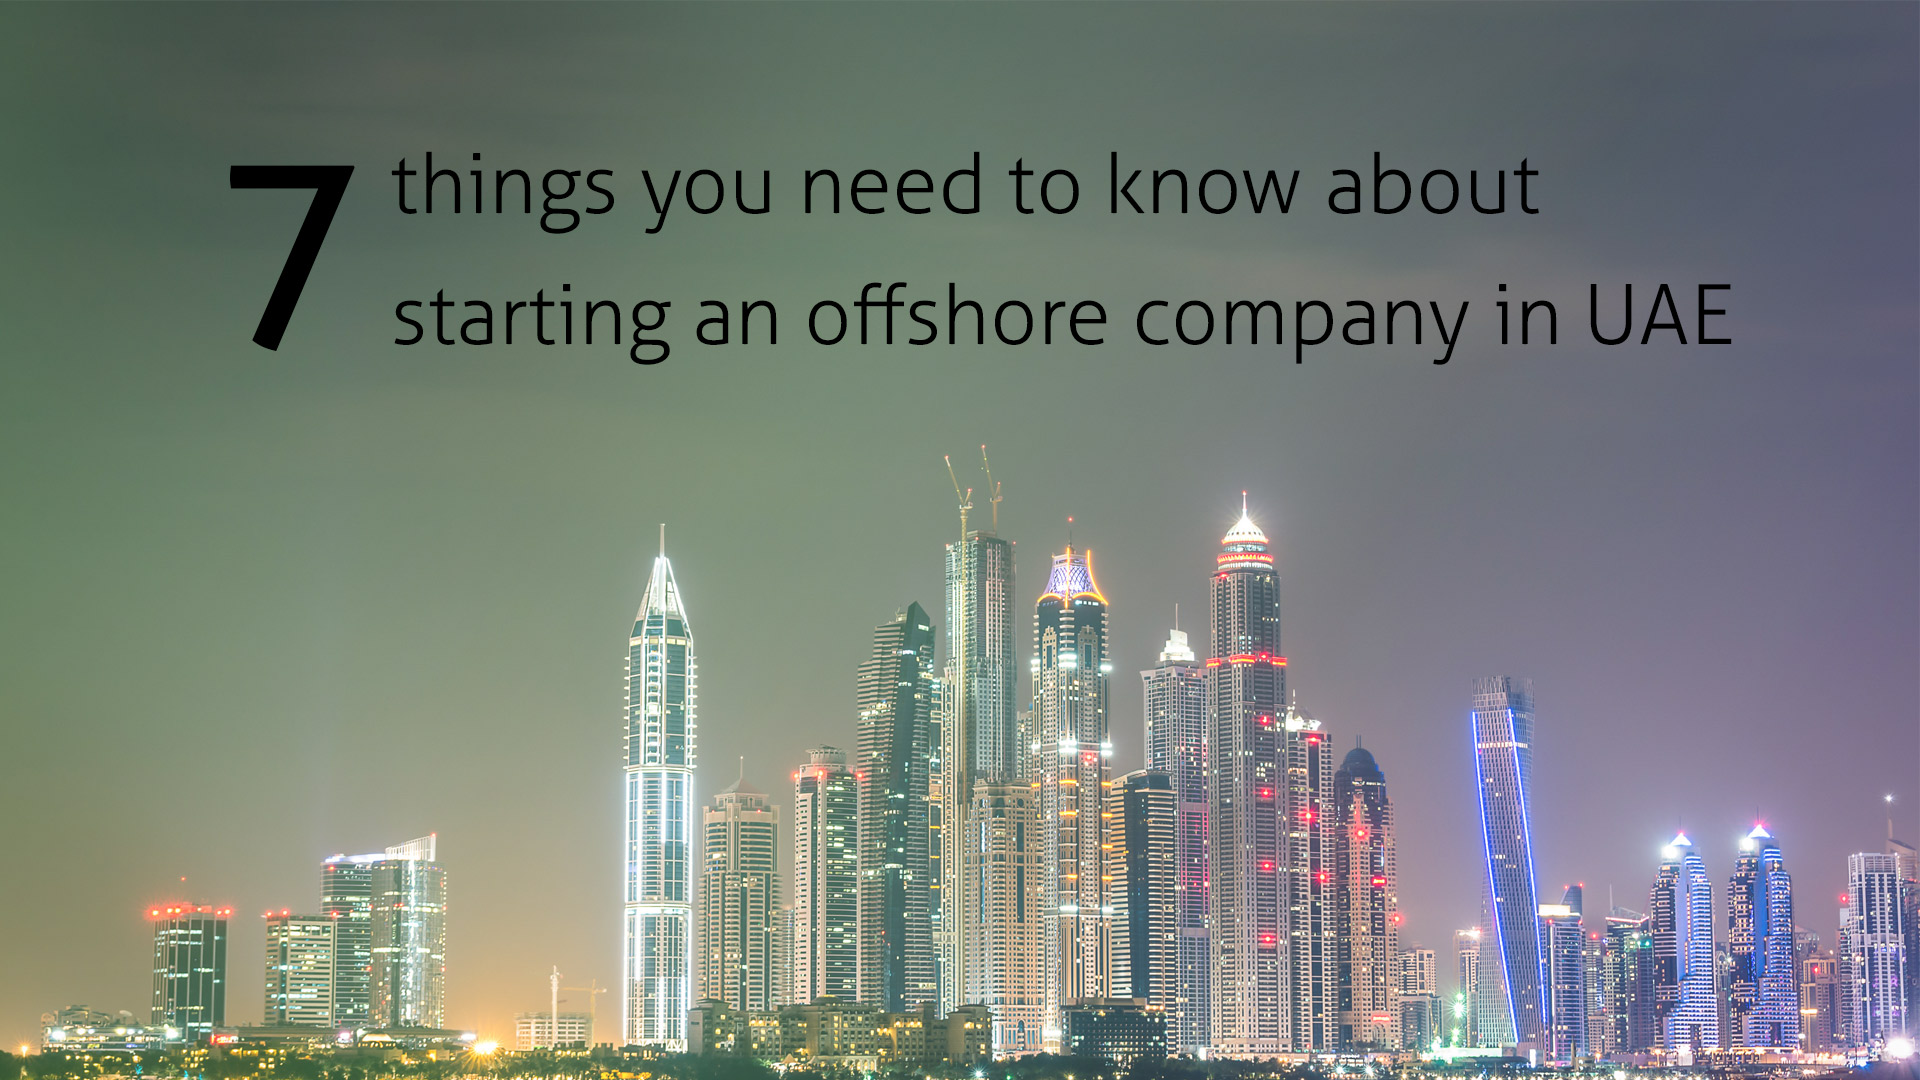 7 things you need to know about starting an offshore company in UAE